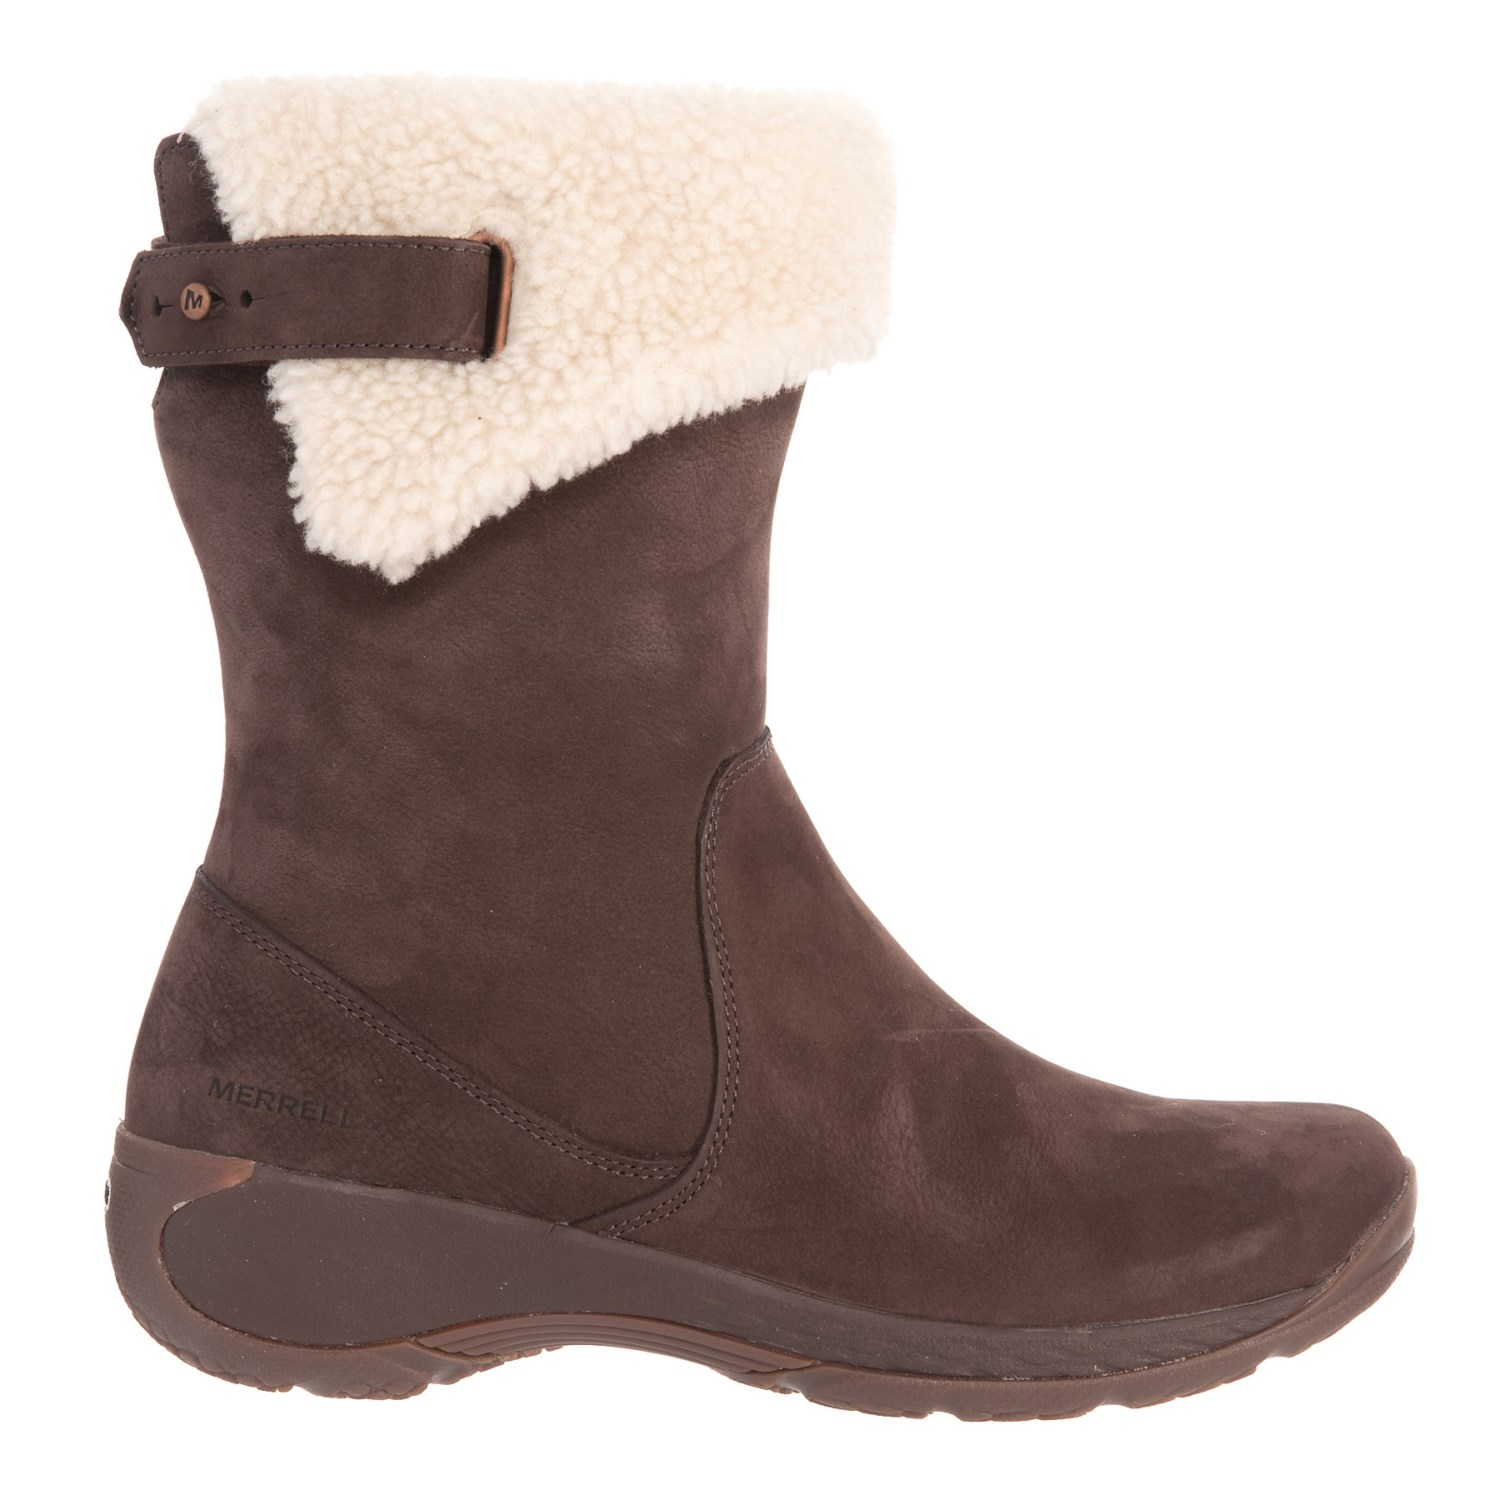 4ae5af950181 Merrell Encore Faux-Fur-Lined Boots (For Women) - Save 68%